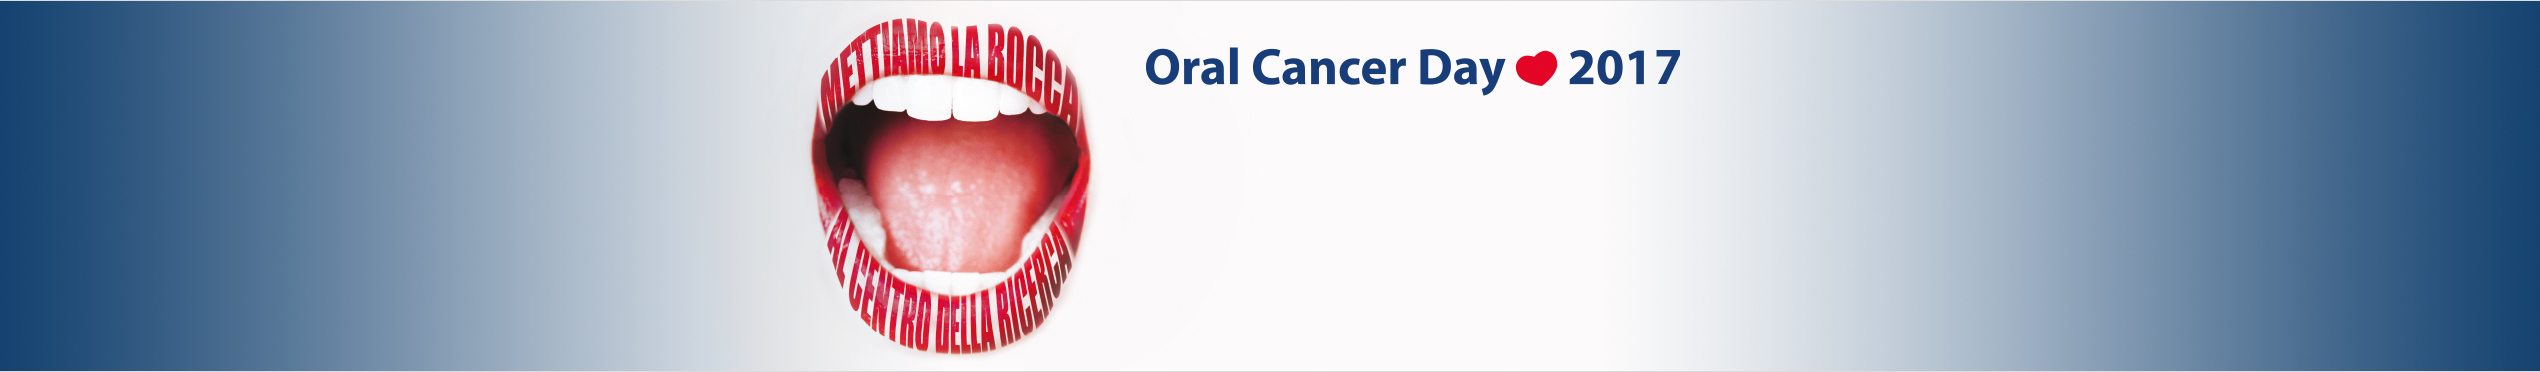 Oral Cancer Day 2017